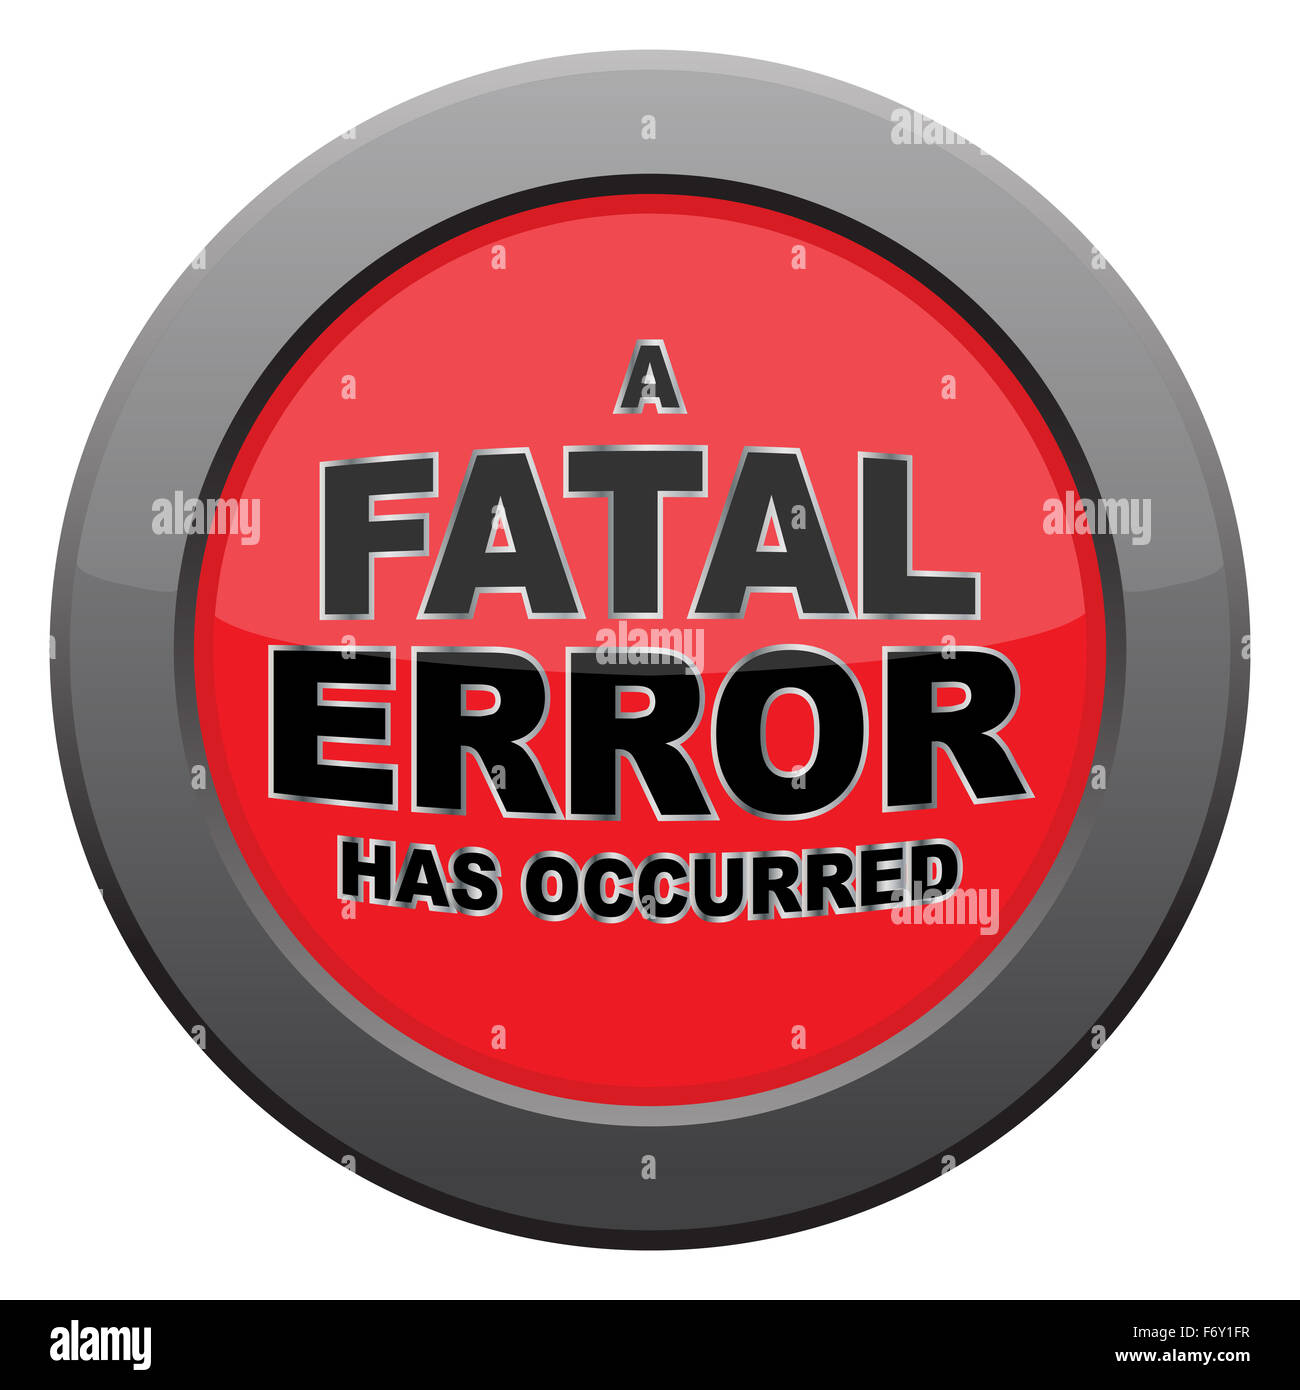 A fatal error icon isolated on a white background - Stock Image